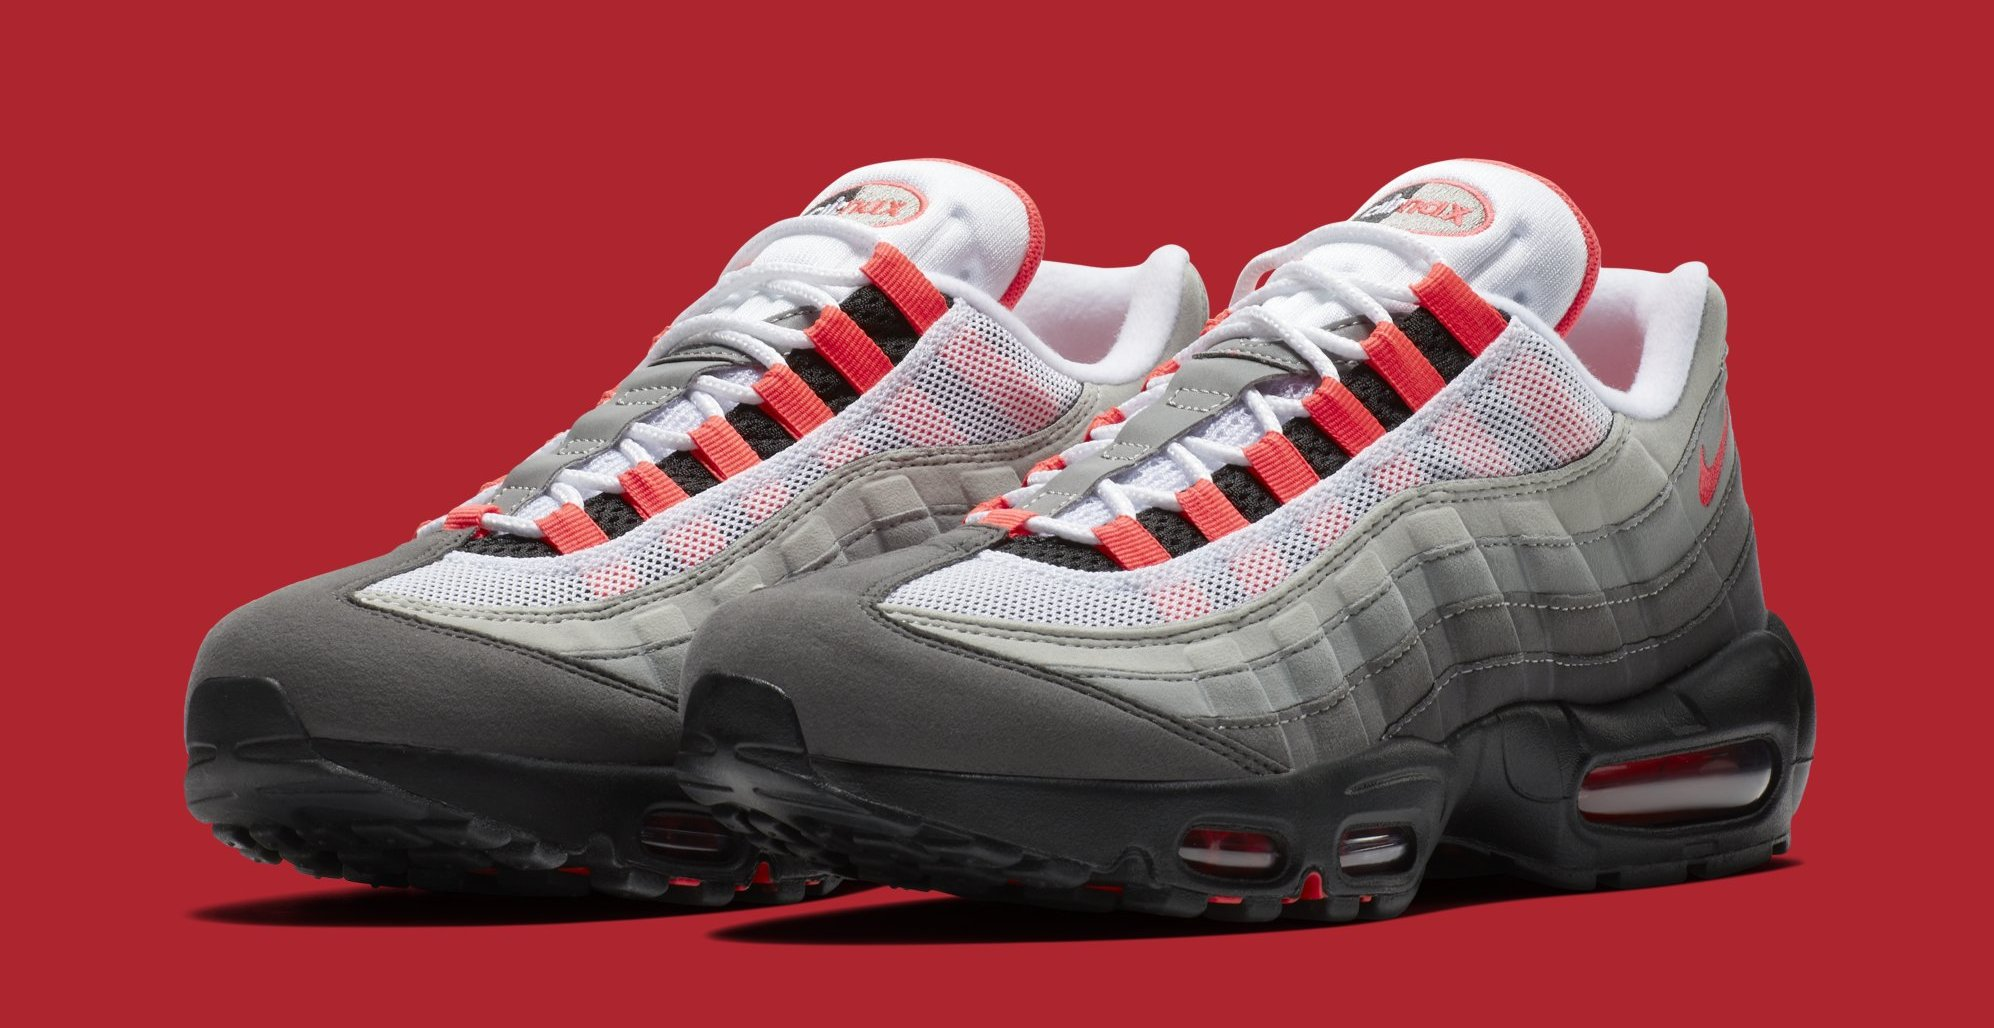 Vibrar Haiku Surrey  Nike Air Max 95 'Solar Red' AT2865-100 Release Date | Sole Collector